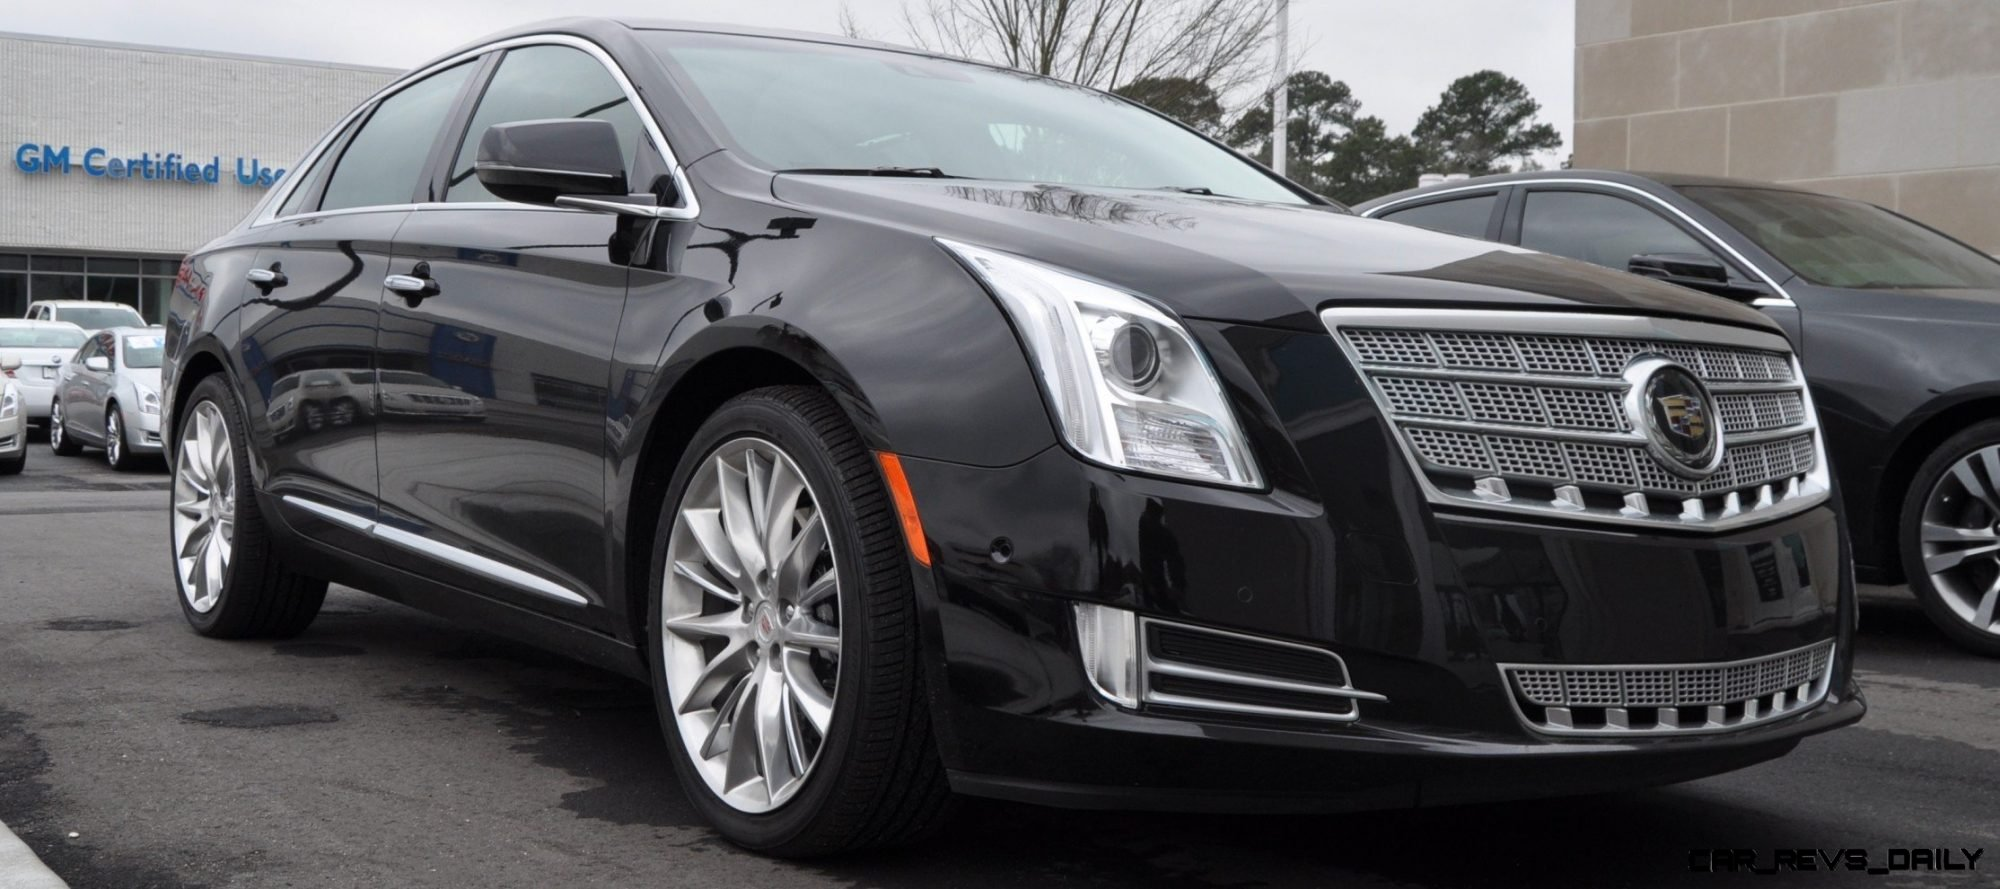 2014 cadillac xts4 platinum vsport first drive video and photos 8